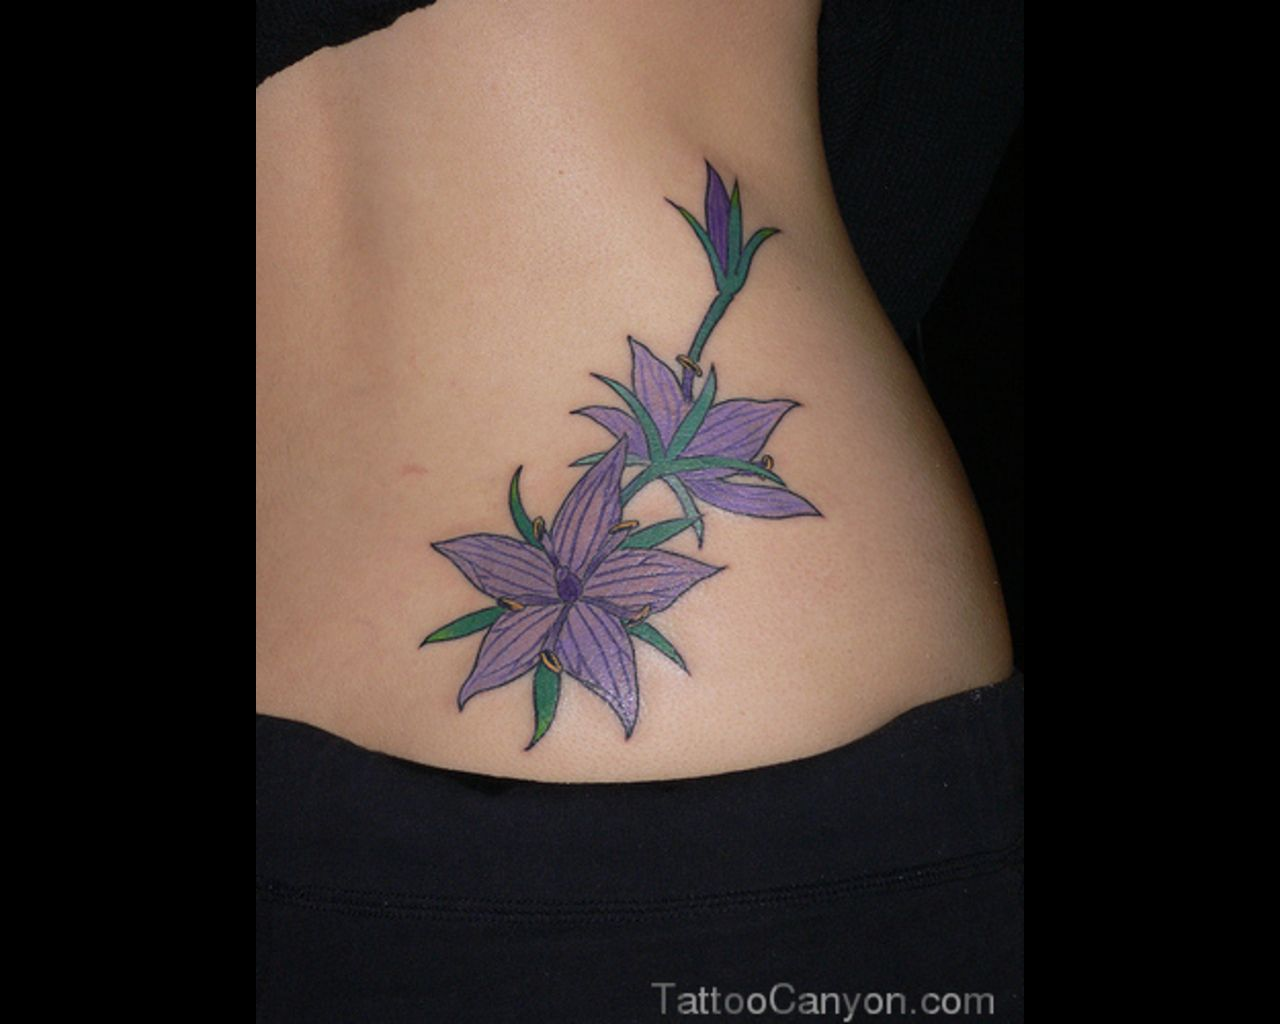 17884 Jasmine Flowers Tattoo Tattoo Design 1280x1024g Tattoo